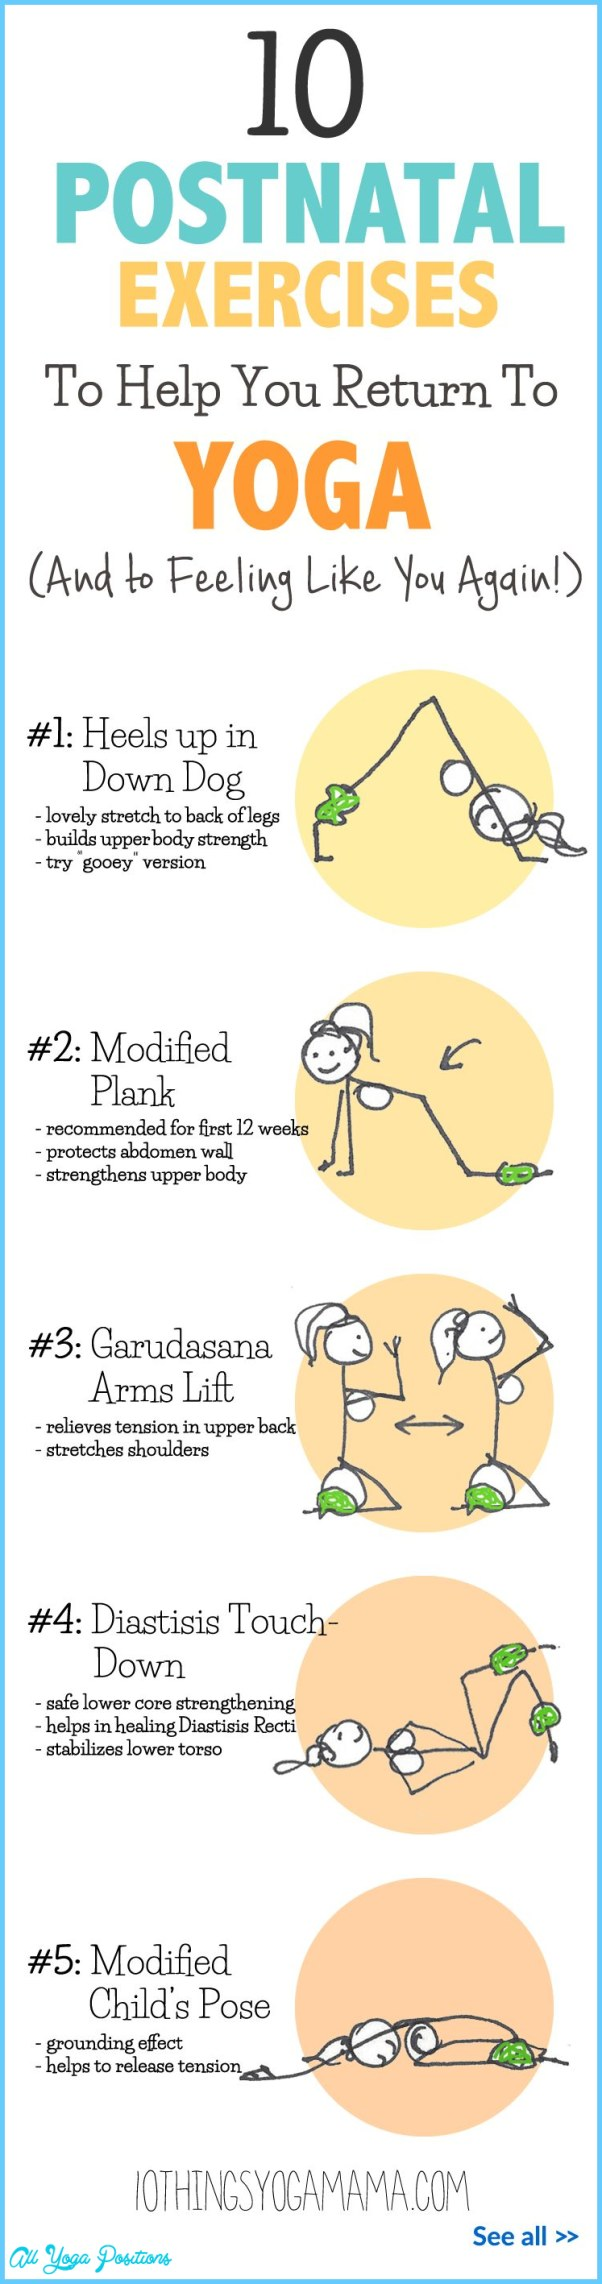 Postpartum Yoga Poses_11.jpg